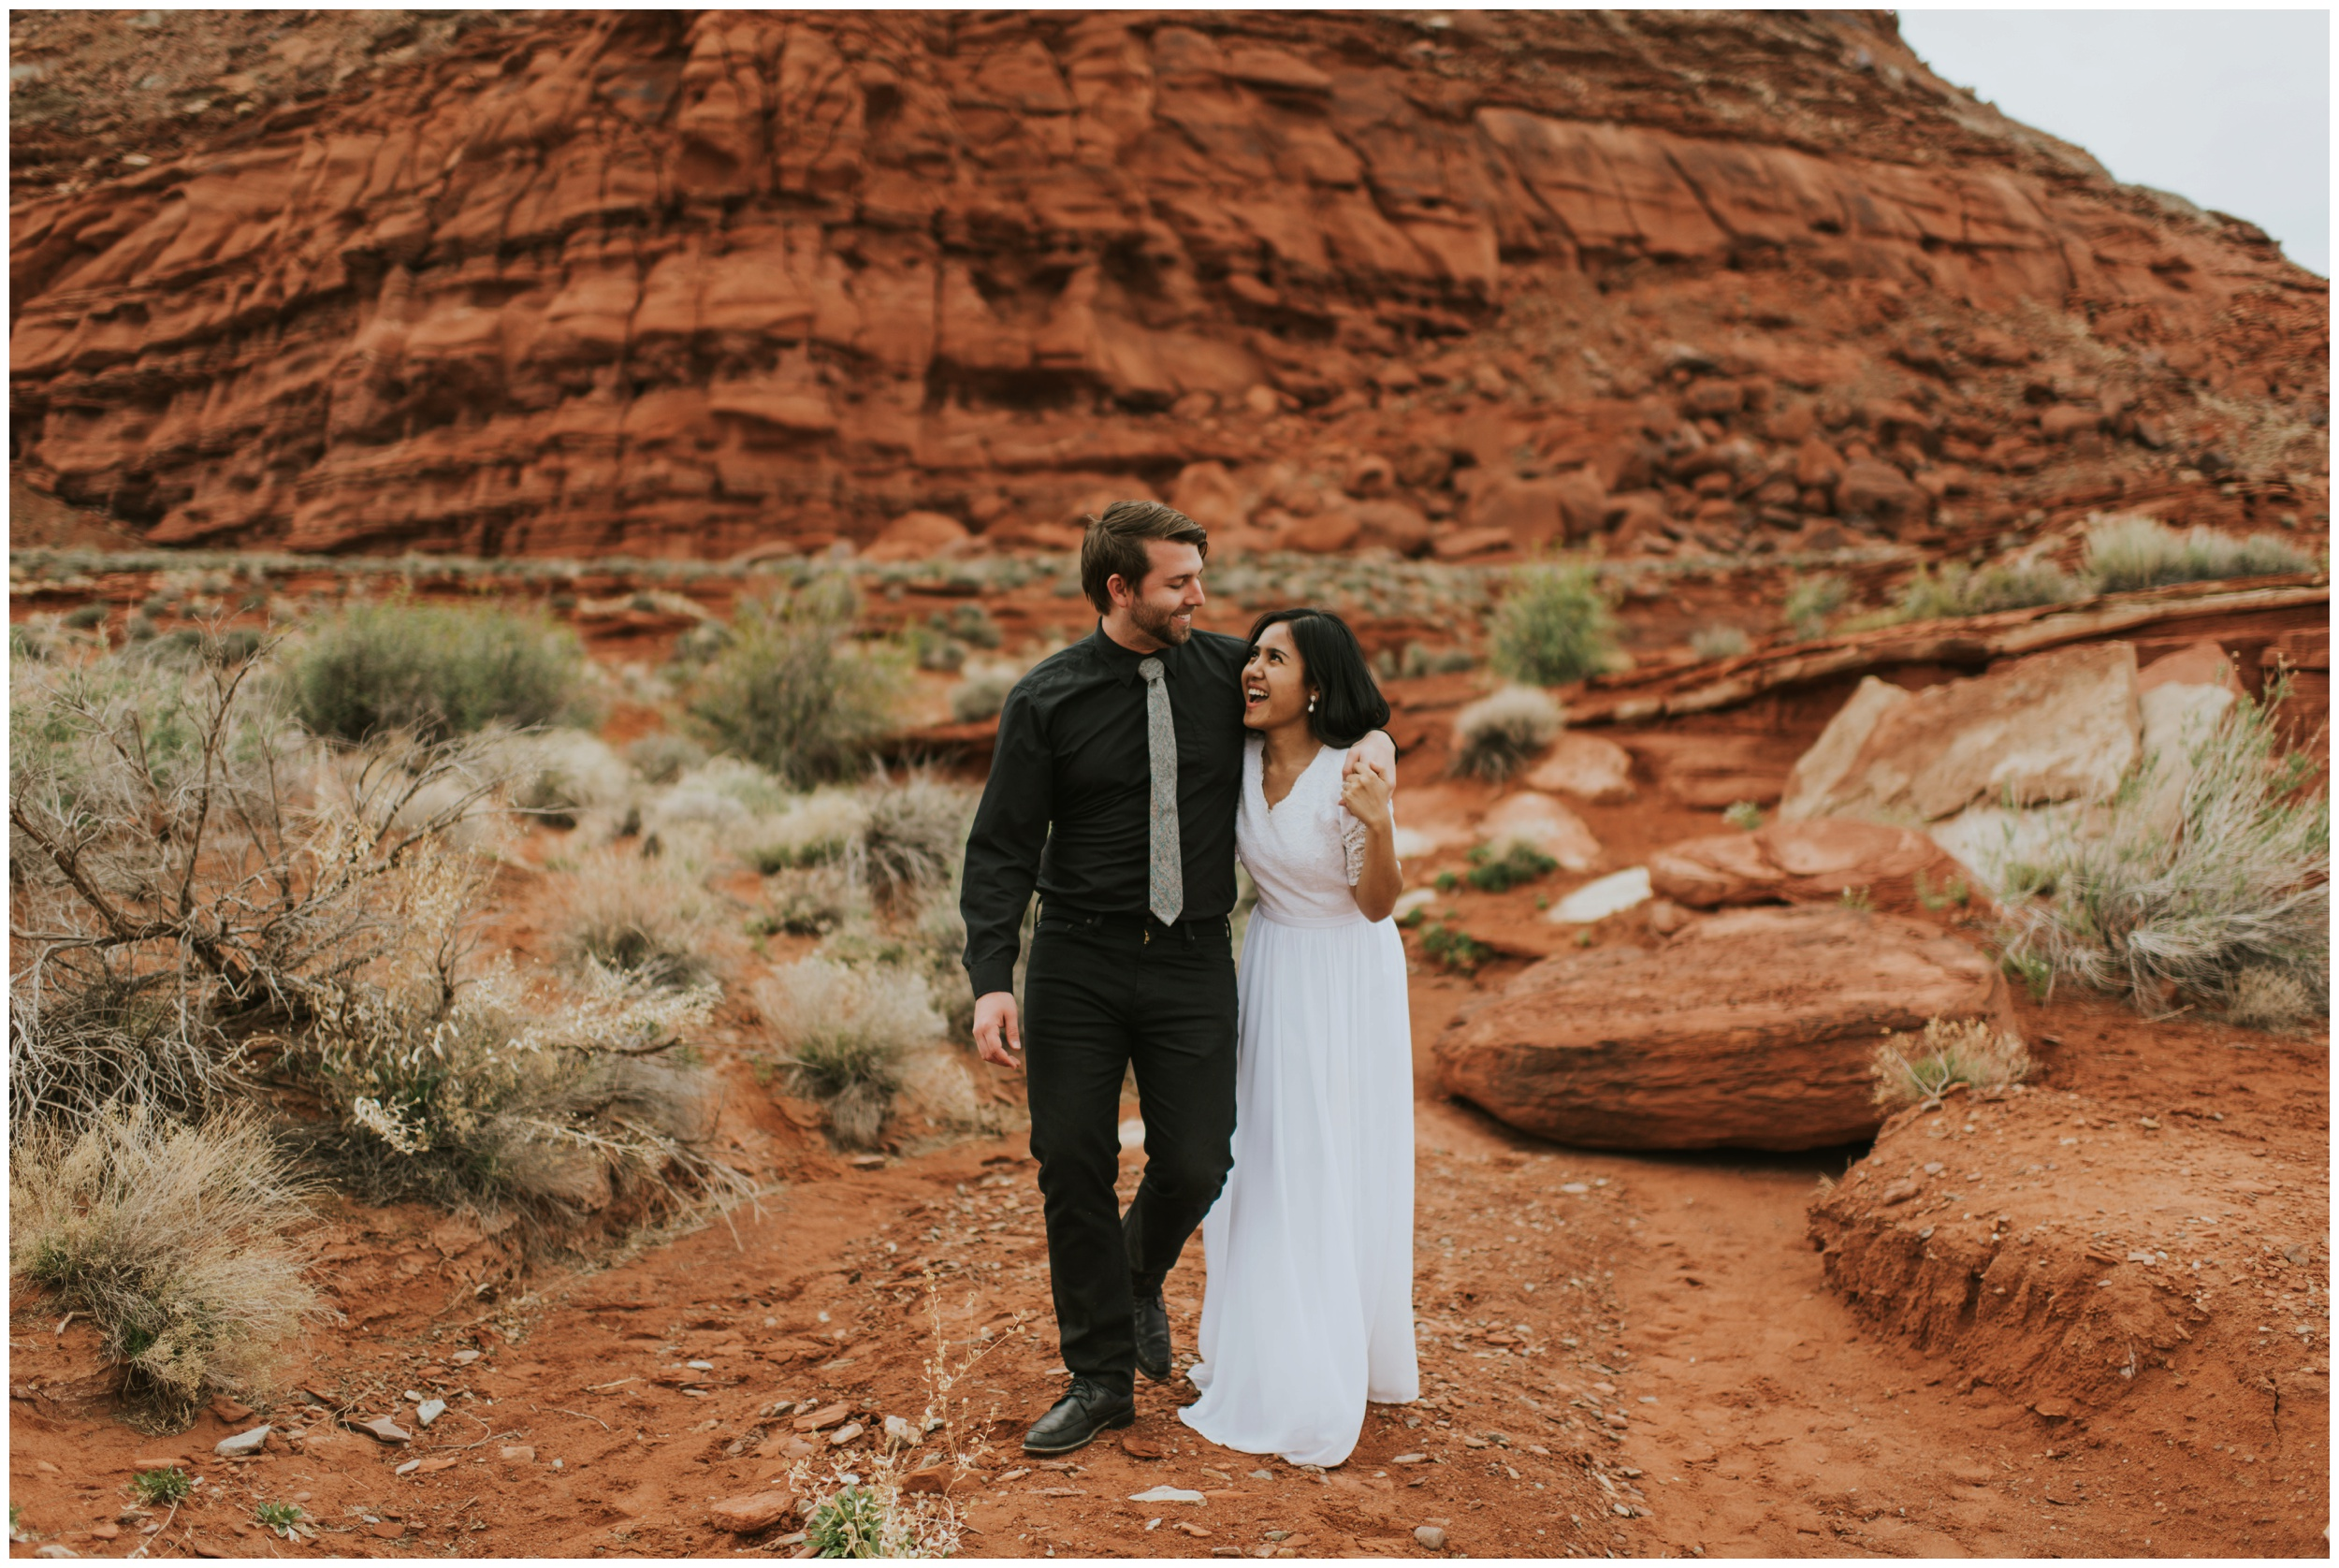 Bride + Groom walking and laughing in a canyon. |Moab Utah, Photographer www.riversandroadsphotography.com